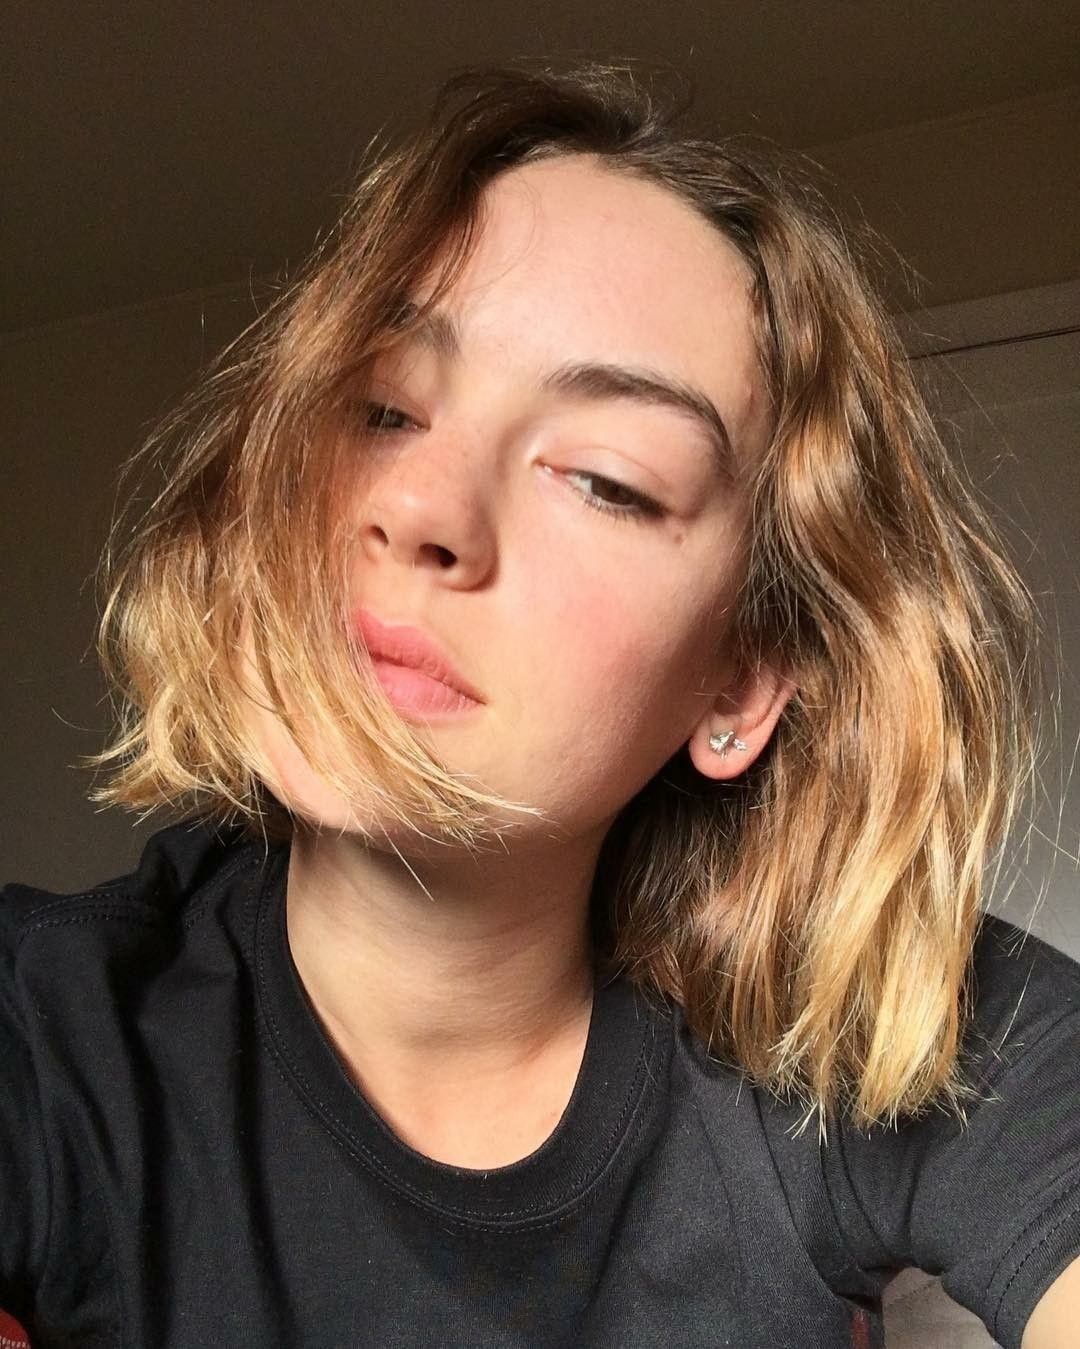 Ass Brigette Lundy-Paine naked (56 photo), Sexy, Fappening, Instagram, in bikini 2018